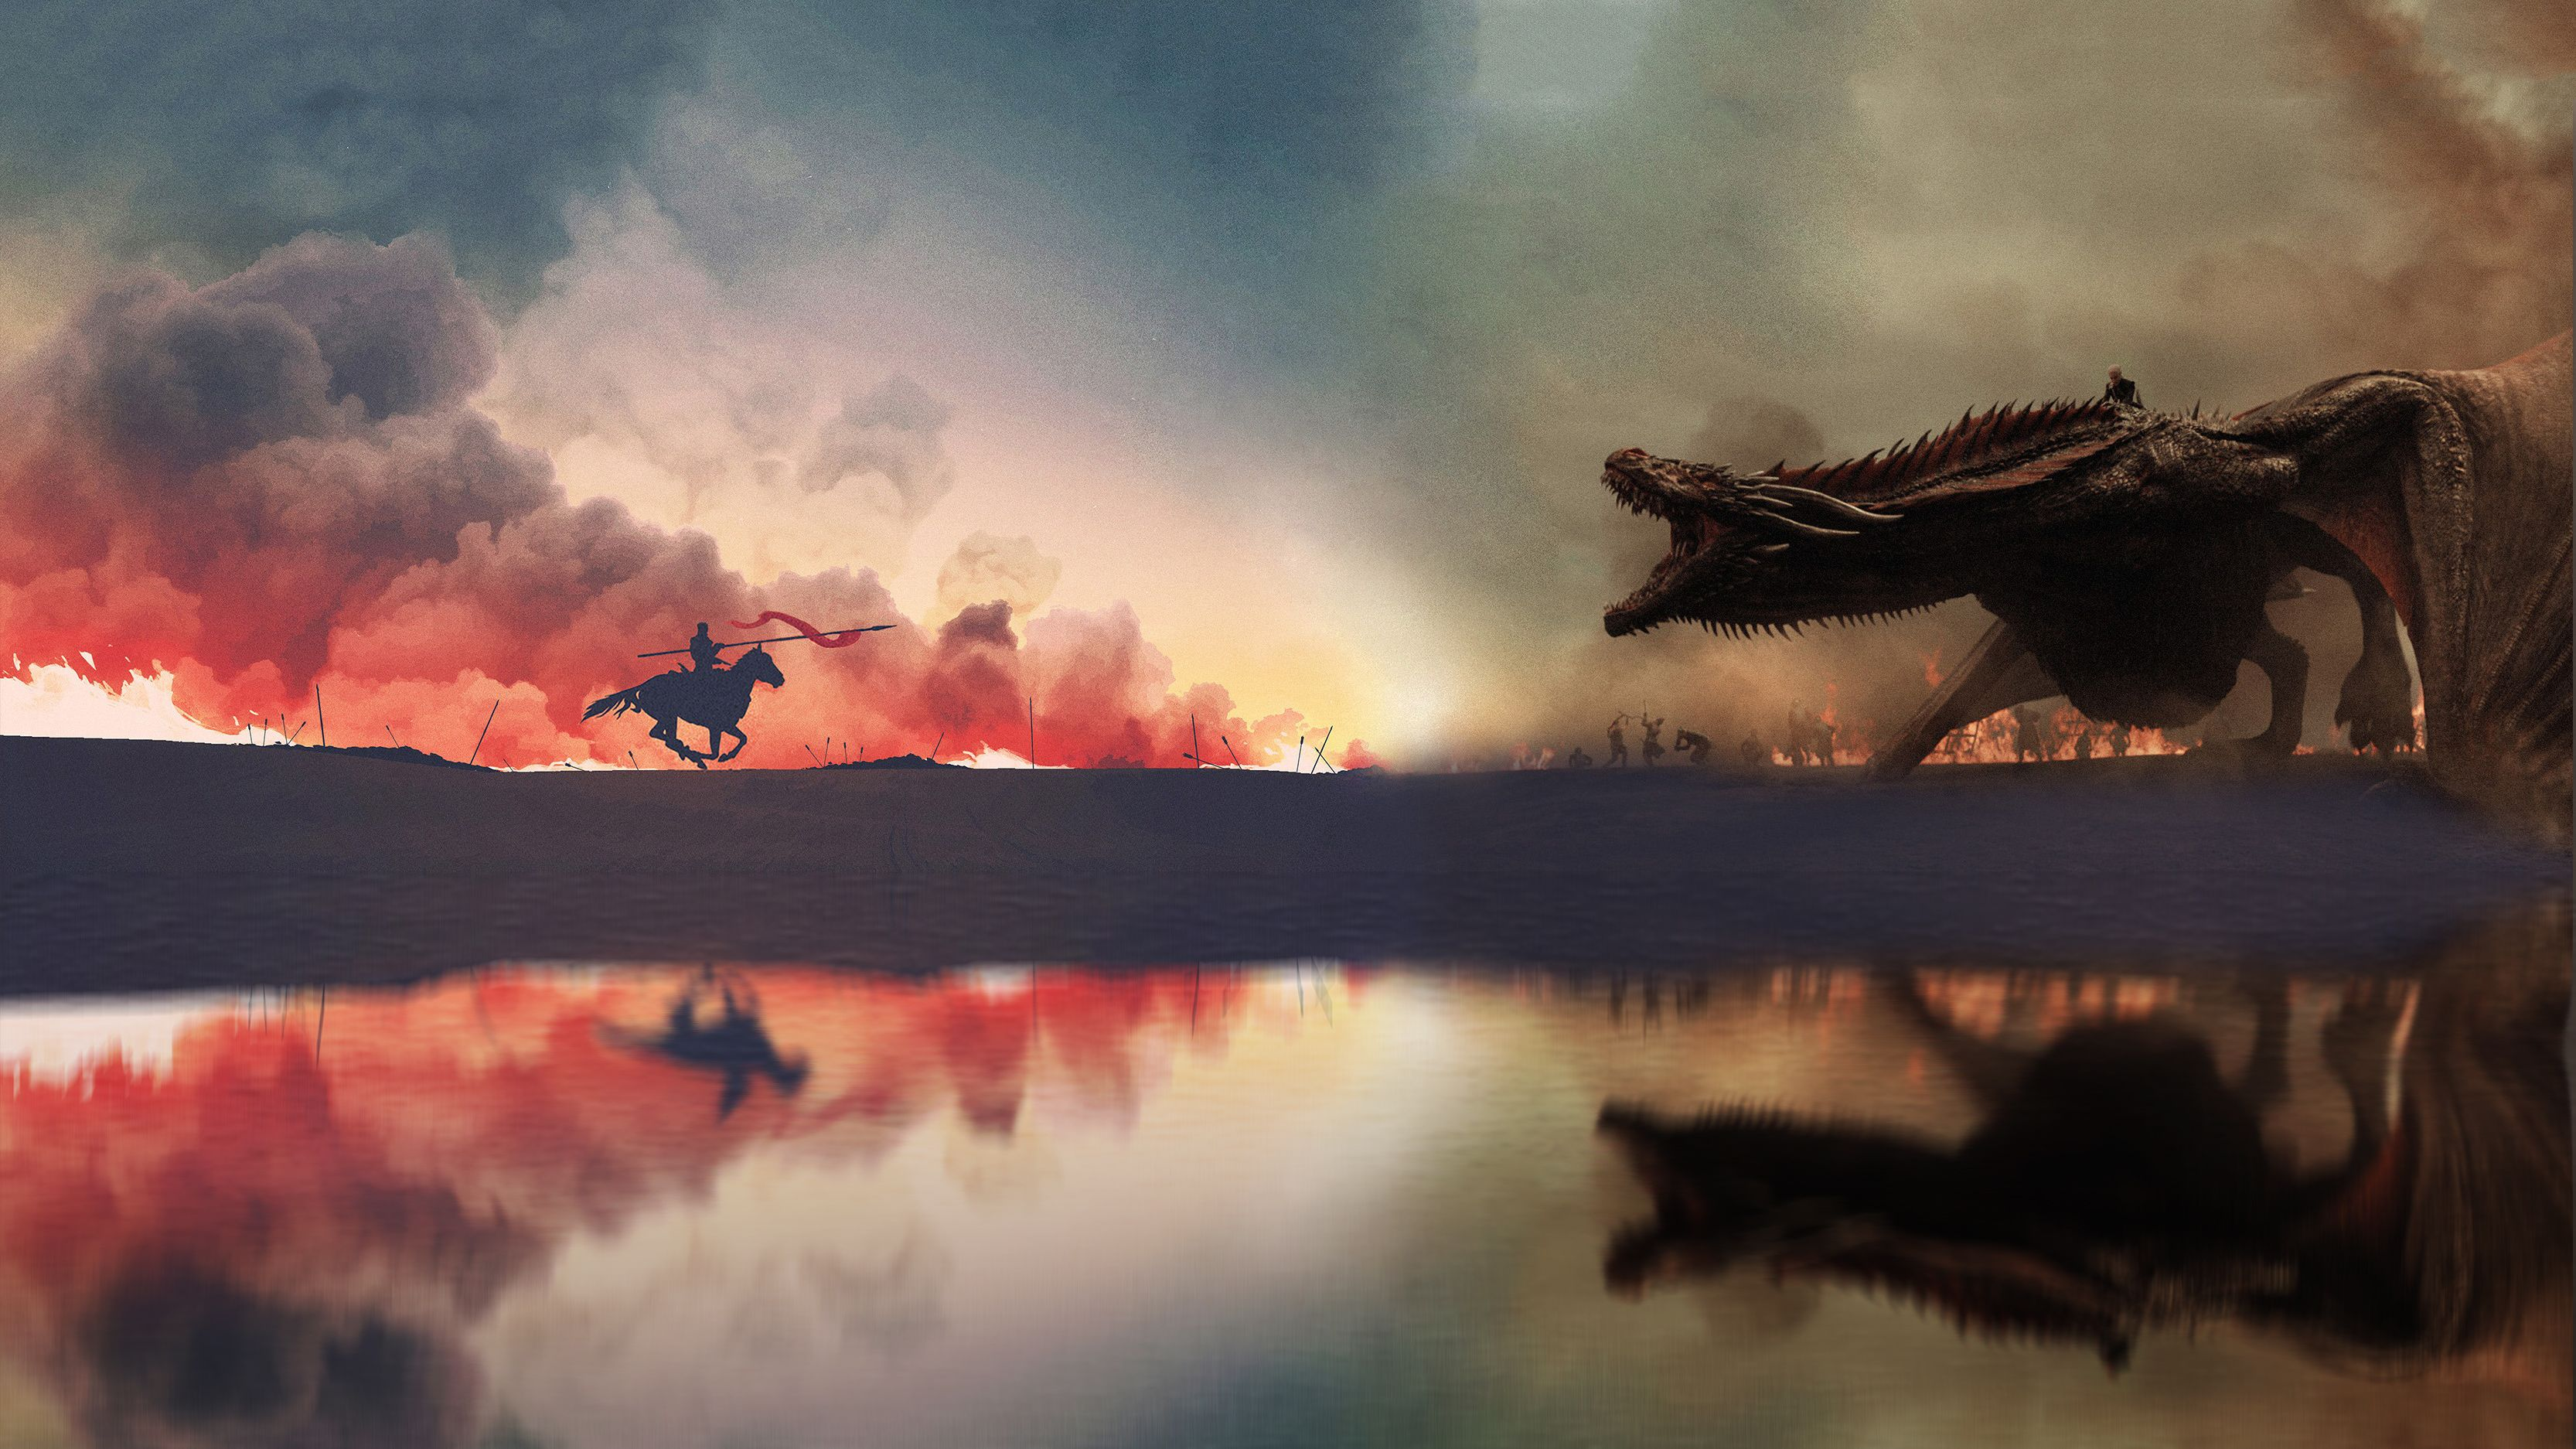 Game Of Thrones War Has Started Artwork 4k 6v Ultra Hd